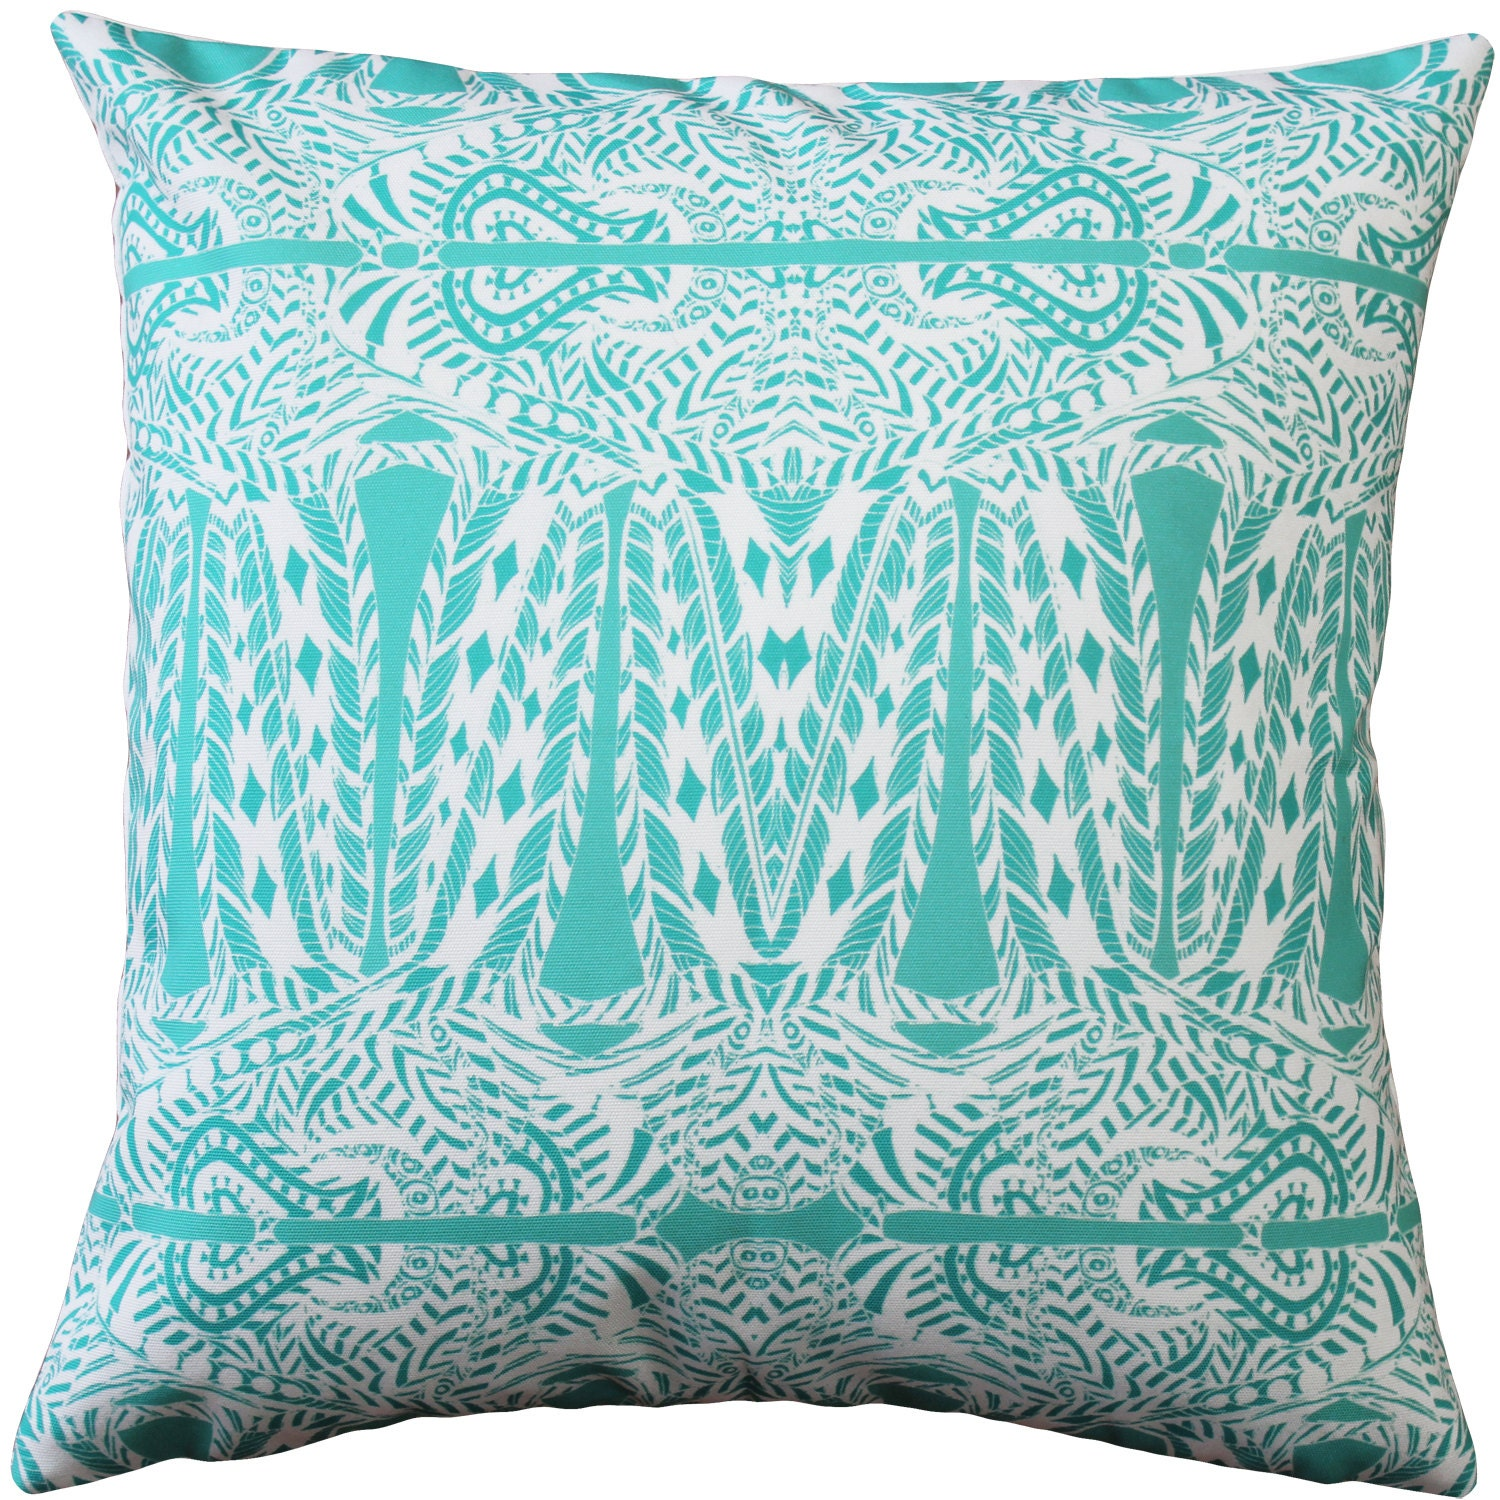 Decorative Pillows In Turquoise : Partridge Stamp Turquoise Throw Pillow 20x20